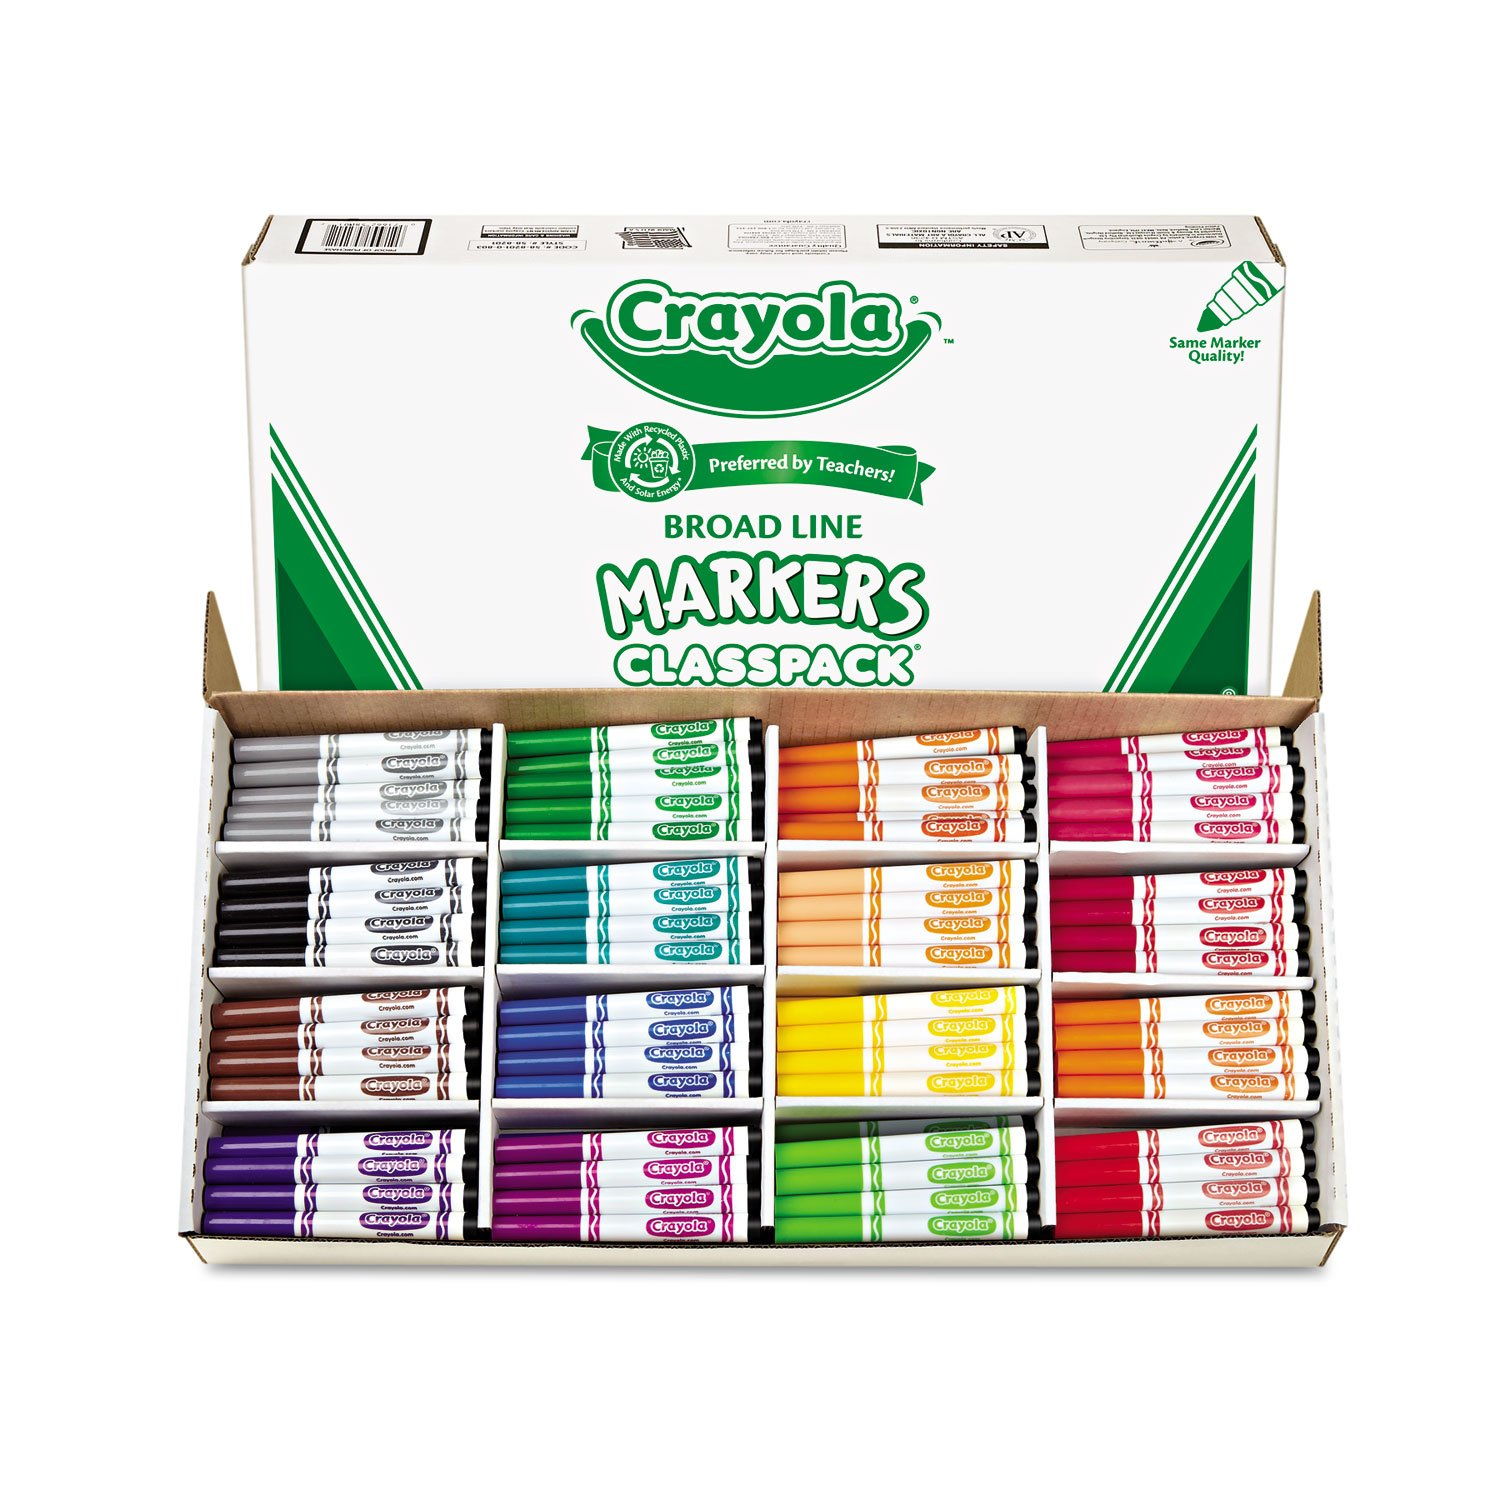 Crayola 588201 Non-Washable Classpack Markers, Broad Point, 16 Classic Colors, 256/Box by Avner-Toys (Image #1)